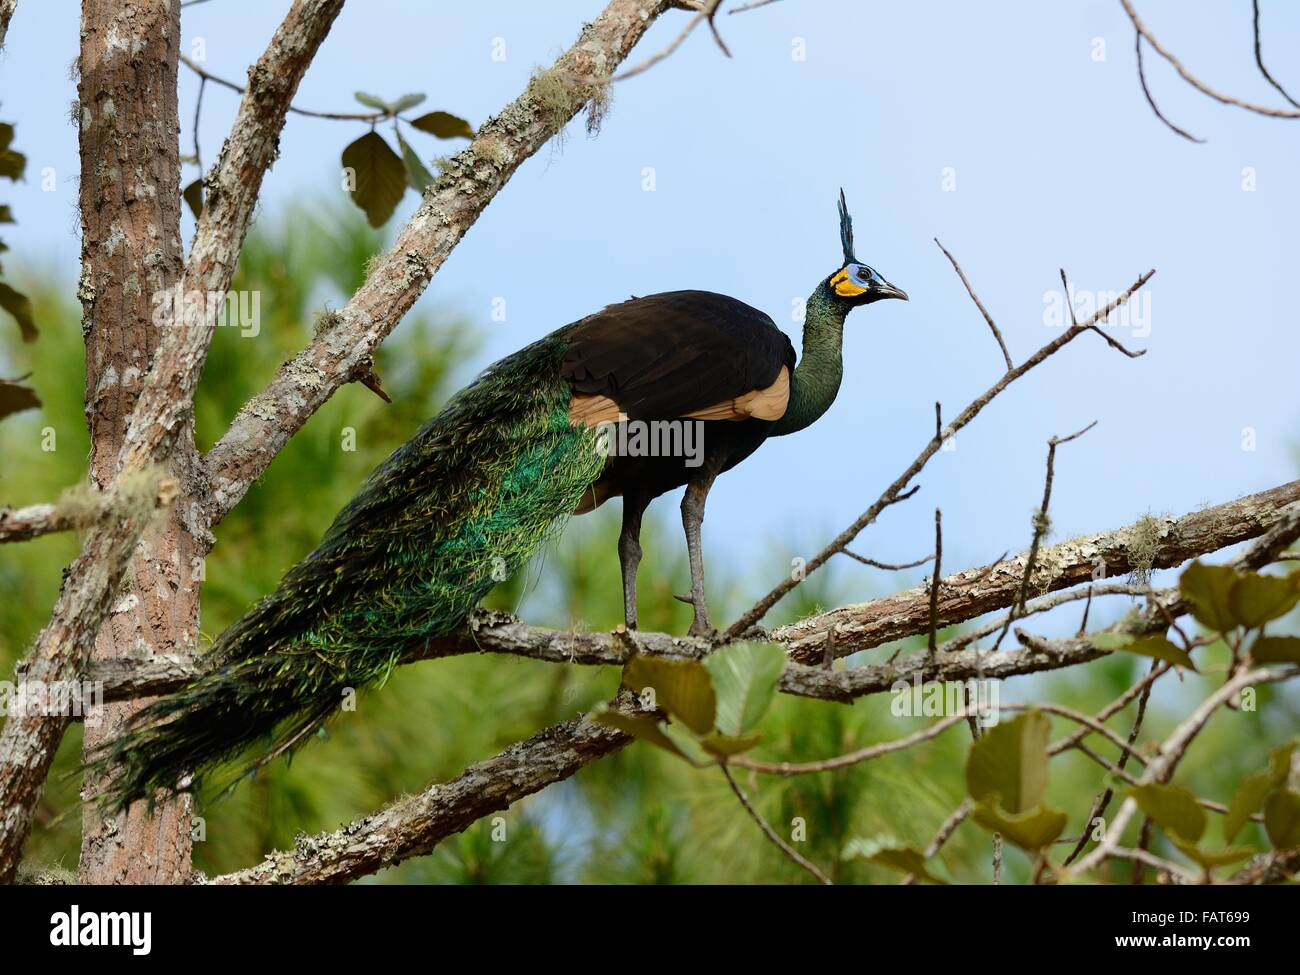 beautiful male Green Peafowl (Pavo muticus) inThai forest - Stock Image